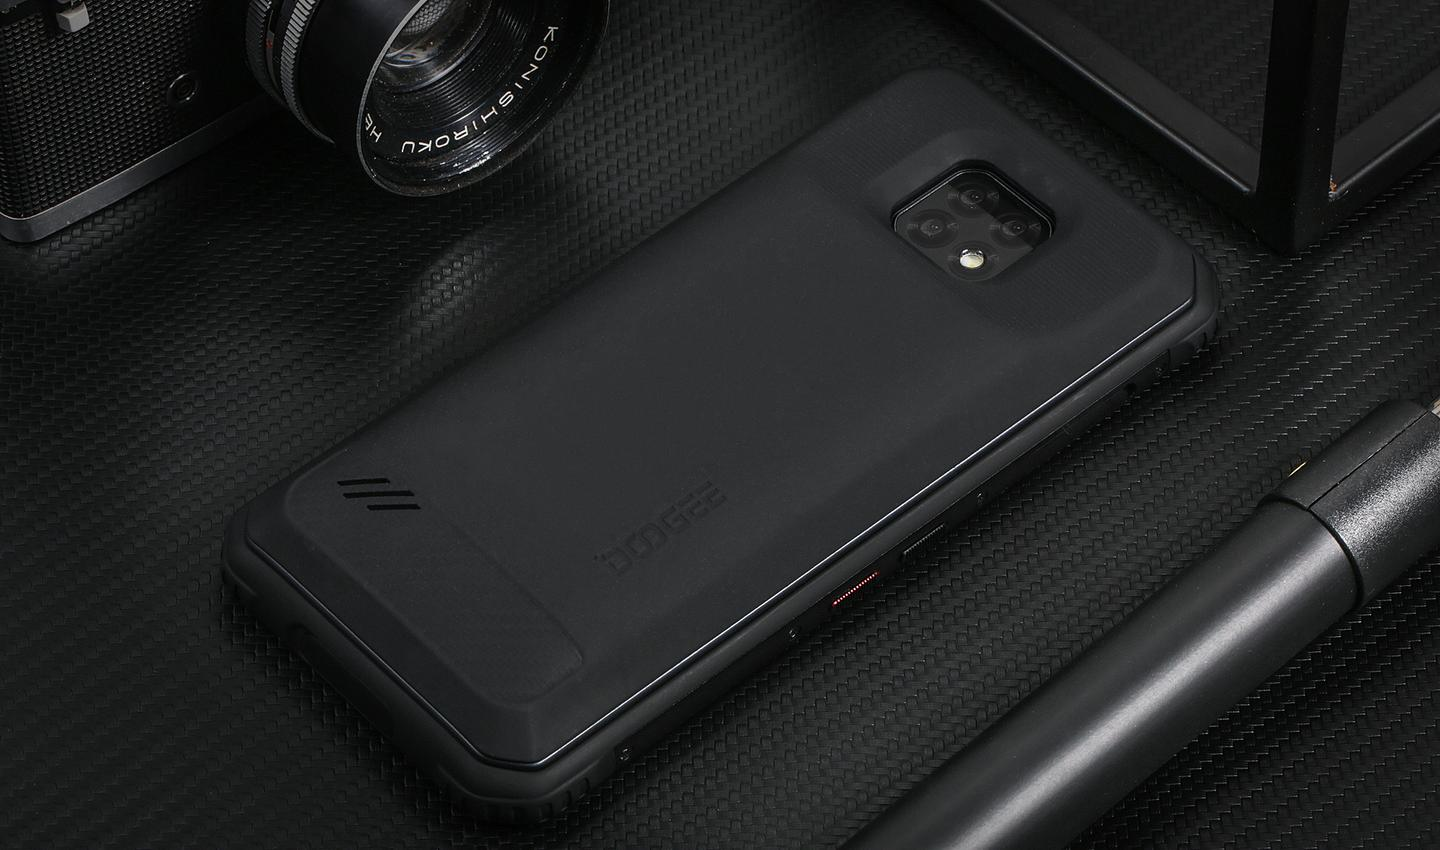 The Doogee S95 Pro power module adds an extra 3,500 mAh battery